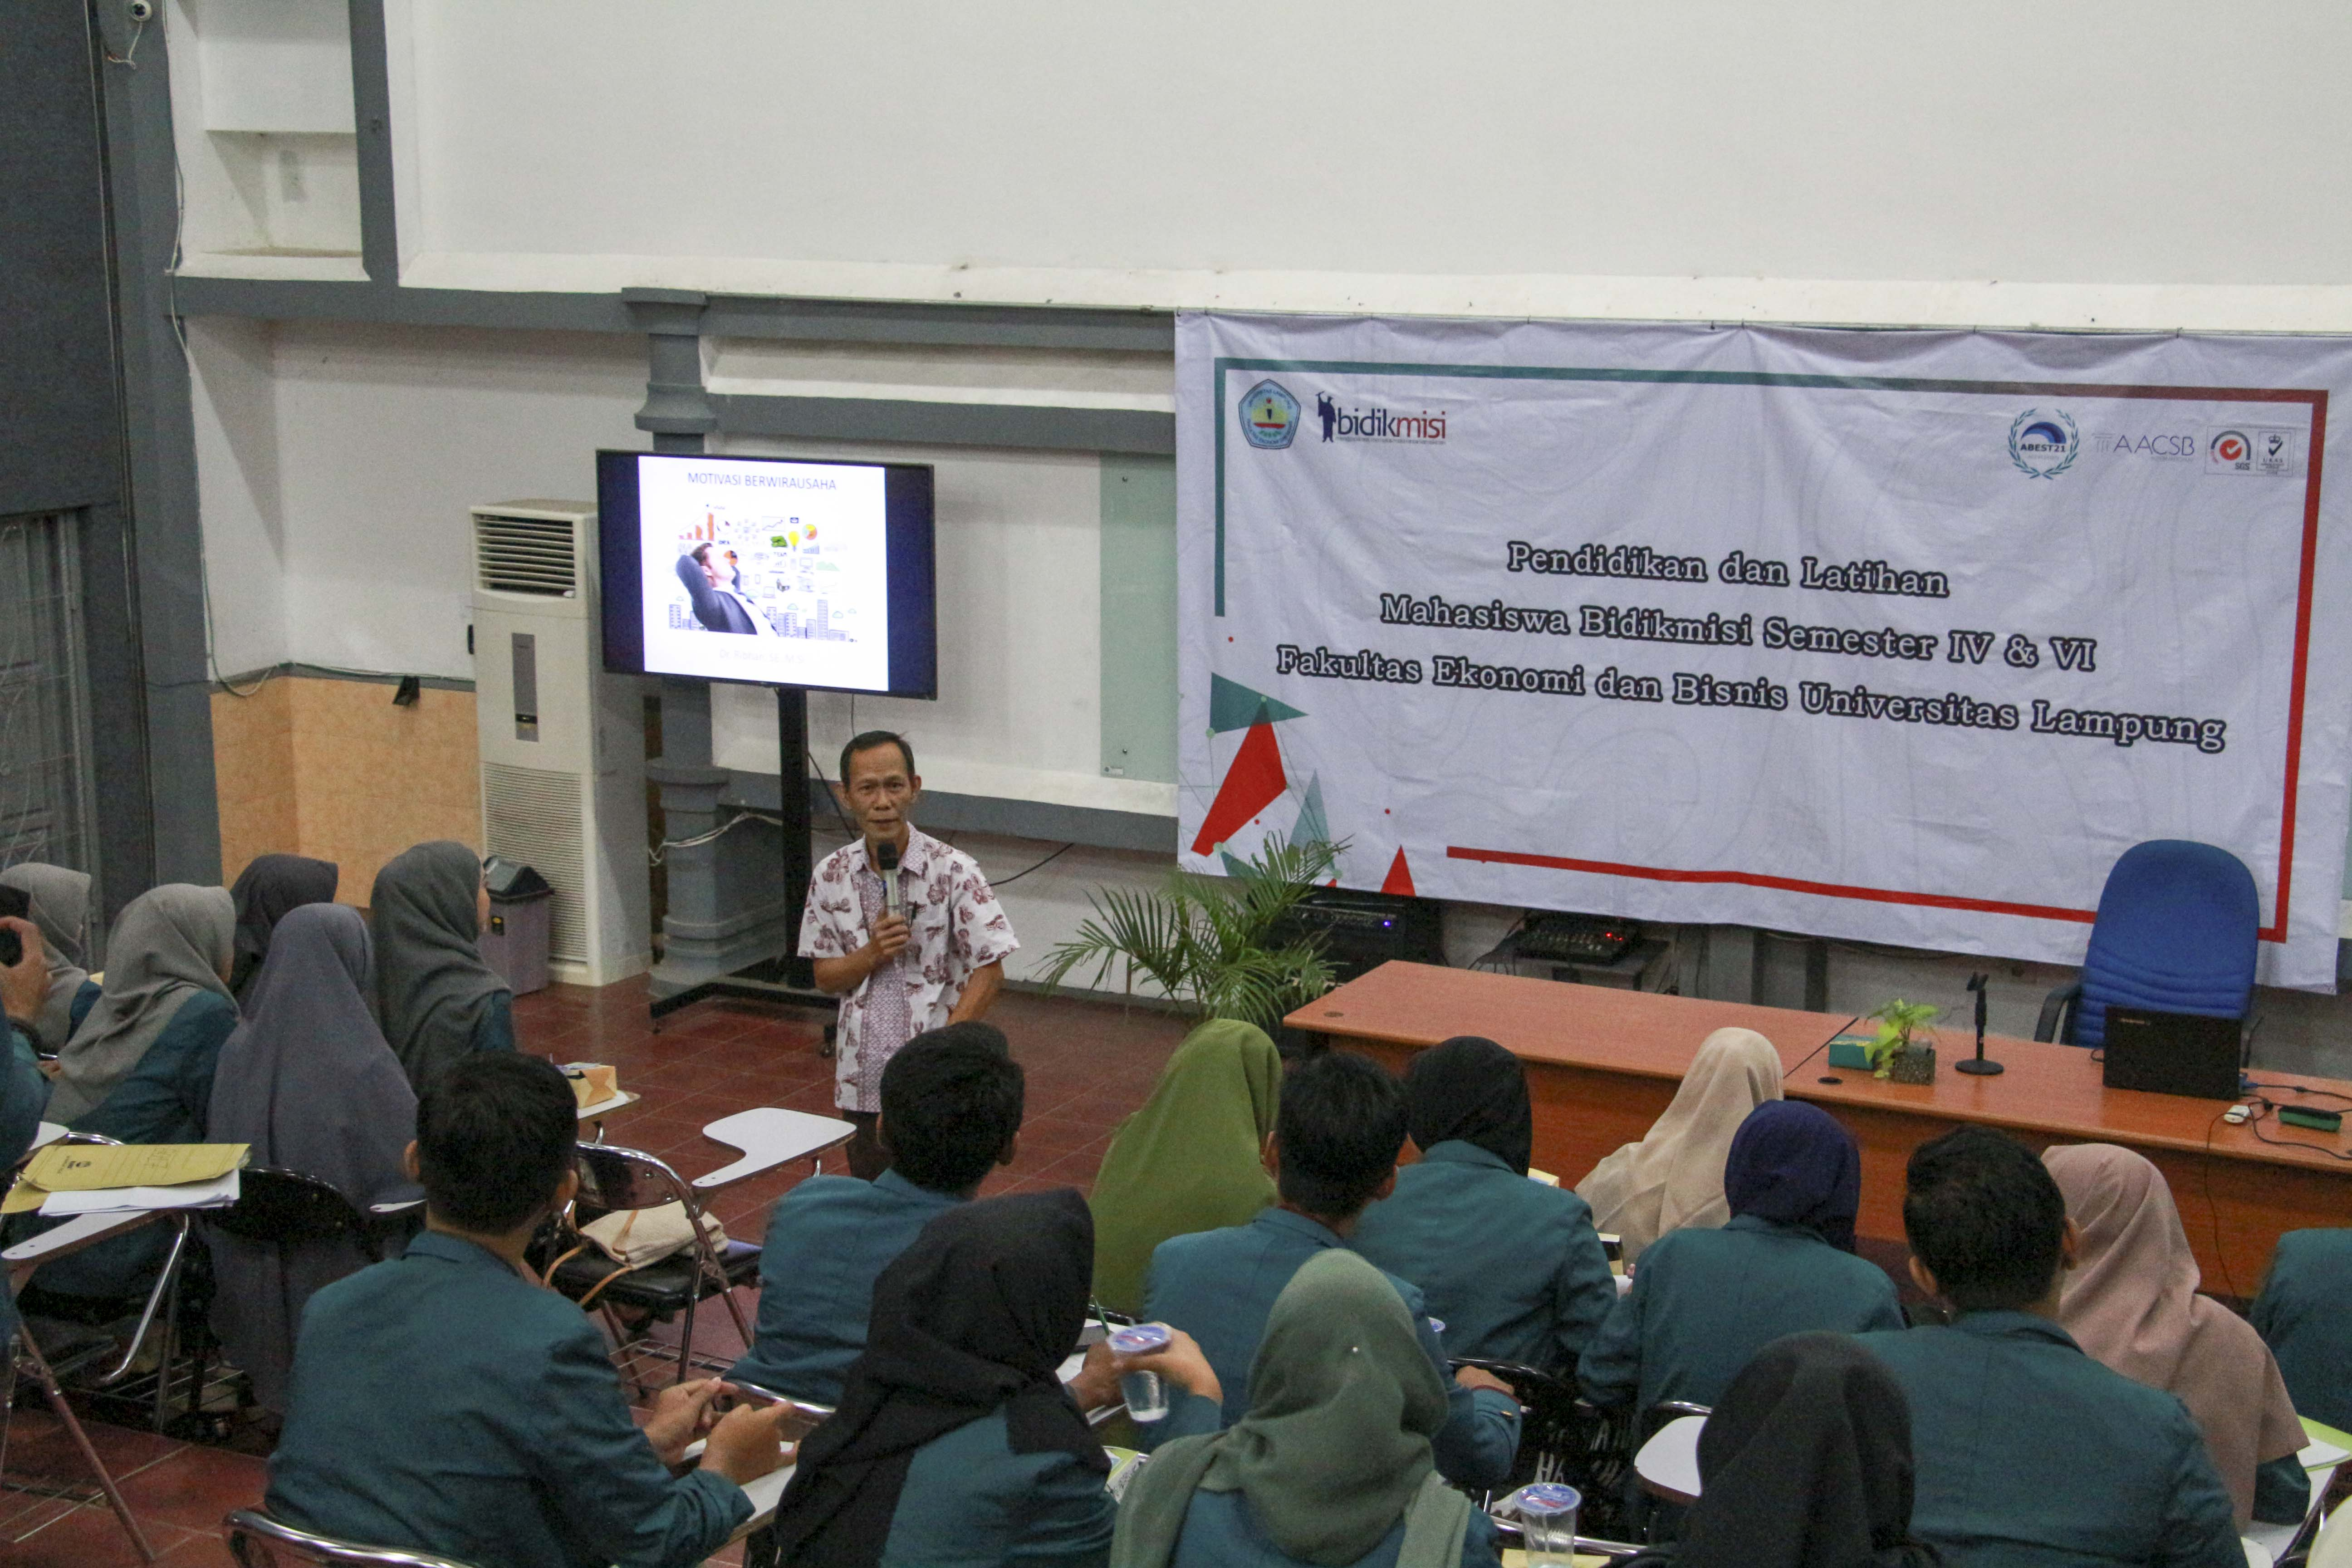 FEB Unila Provides Training for Bidikmisi Recipient Students